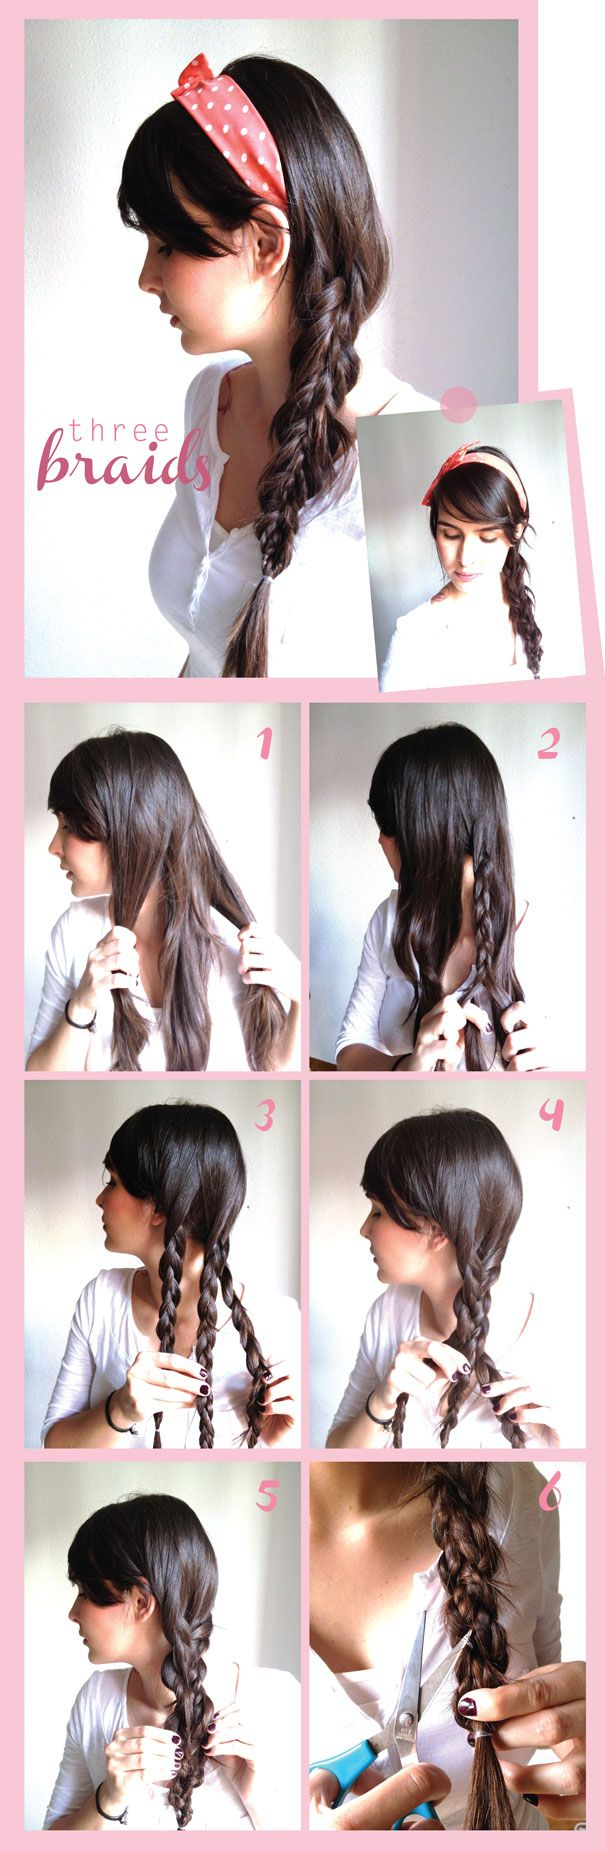 Braid braid braid ud cute hair pinterest third hair style